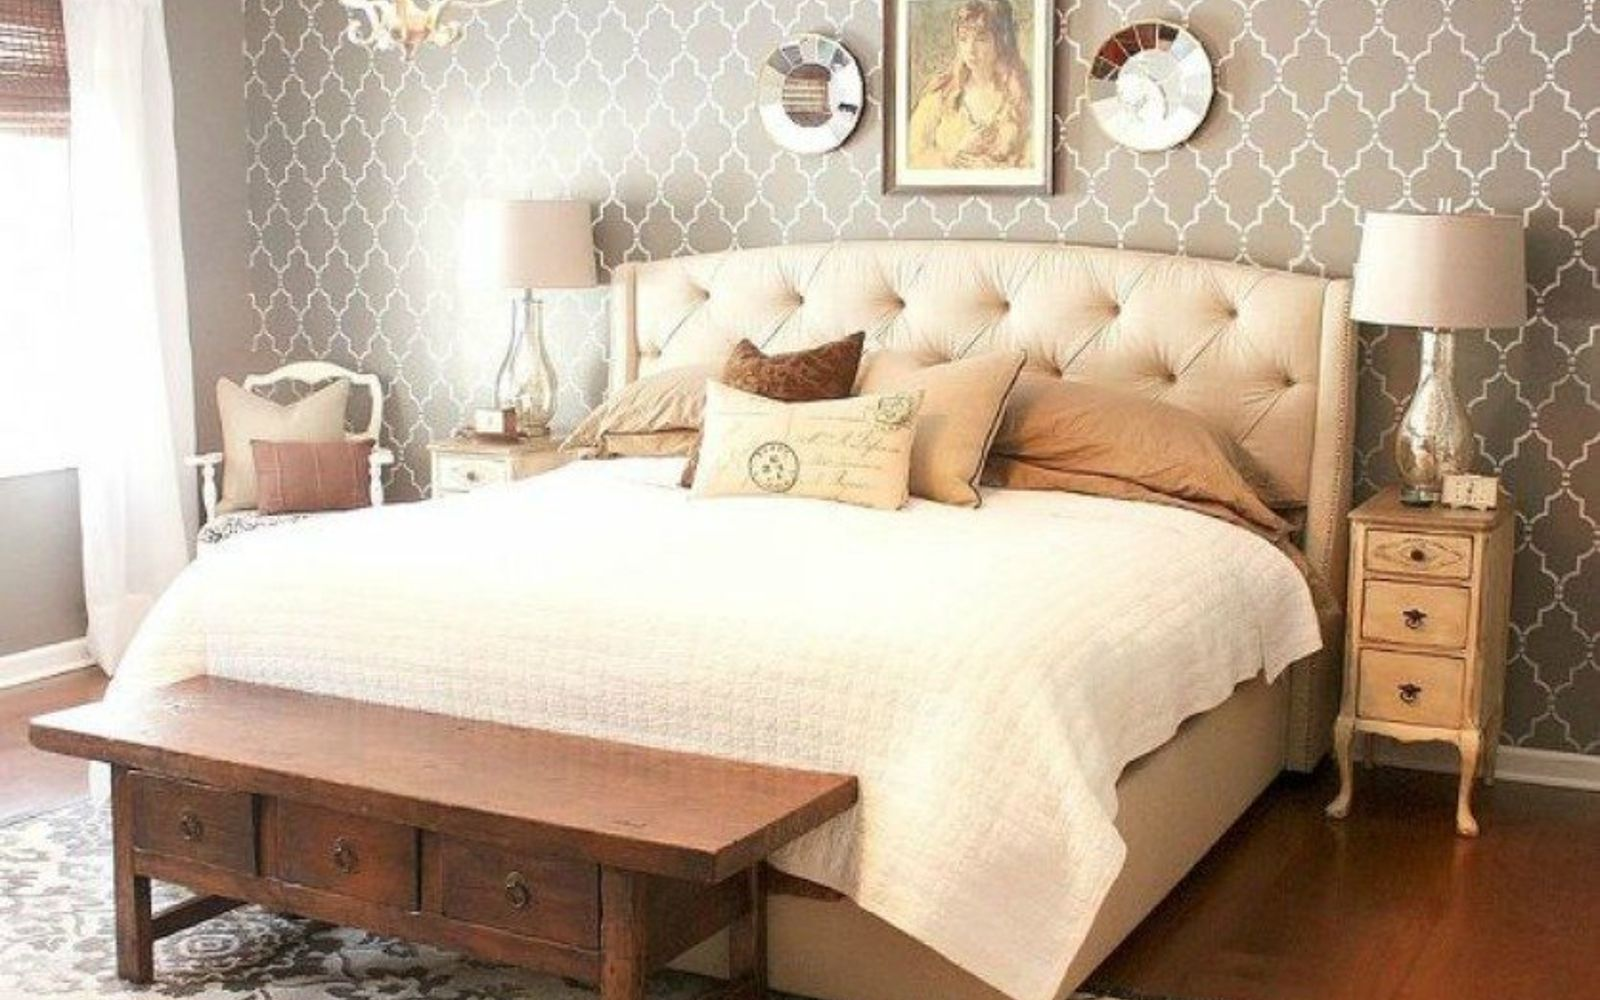 s 13 stylish ideas you ll want to steal for your boring bedroom, bedroom ideas, Paint an accent wall with a stencil